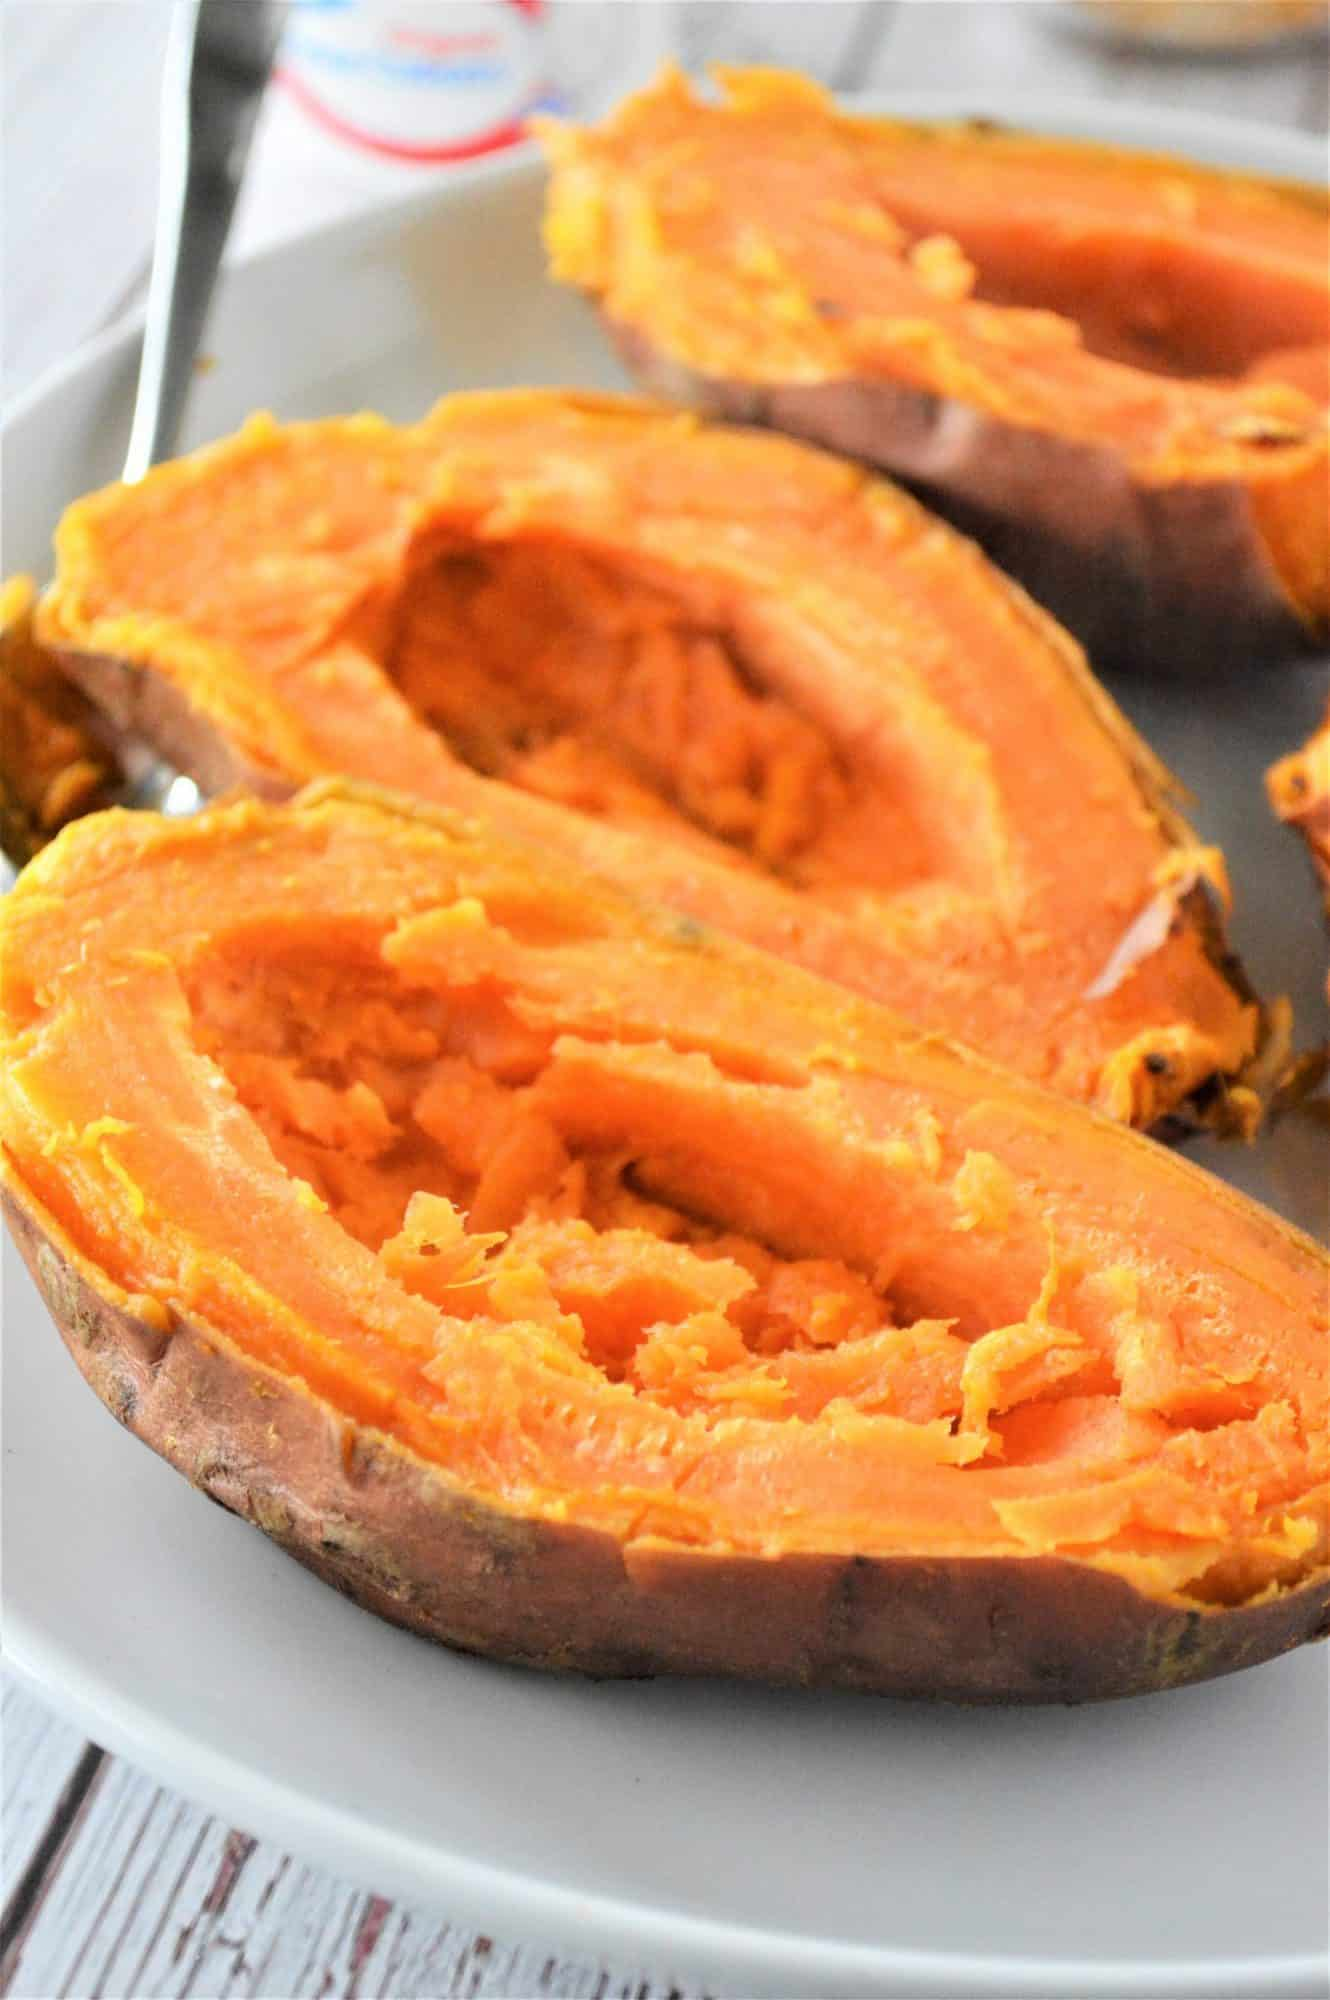 Sweet potatoes cut in half with the middles scooped out